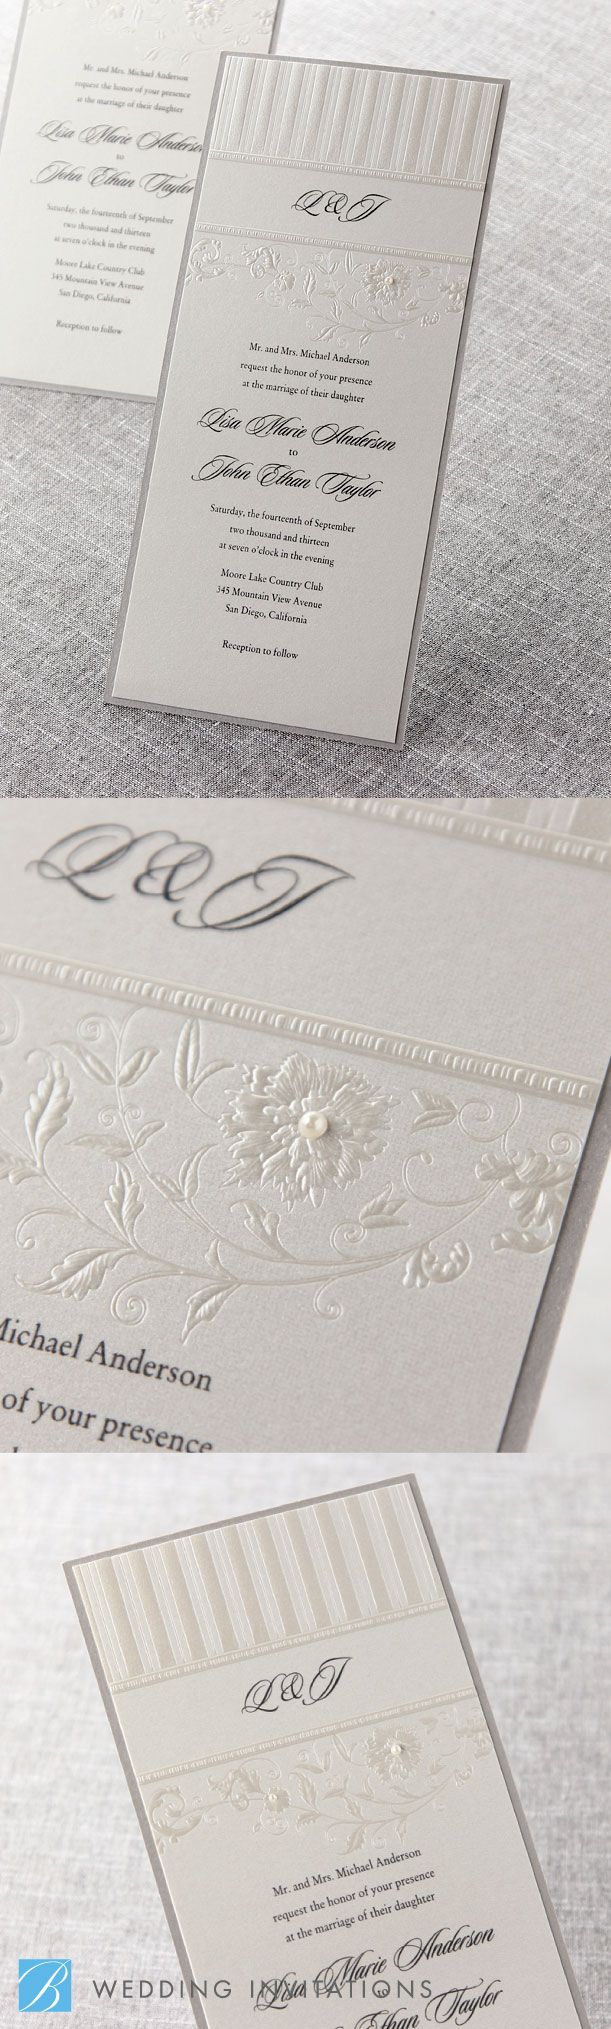 Romantic Couture With Pearls By B Wedding Invitations #wedding #invitations  #weddinginvitations #bweddinginvitations